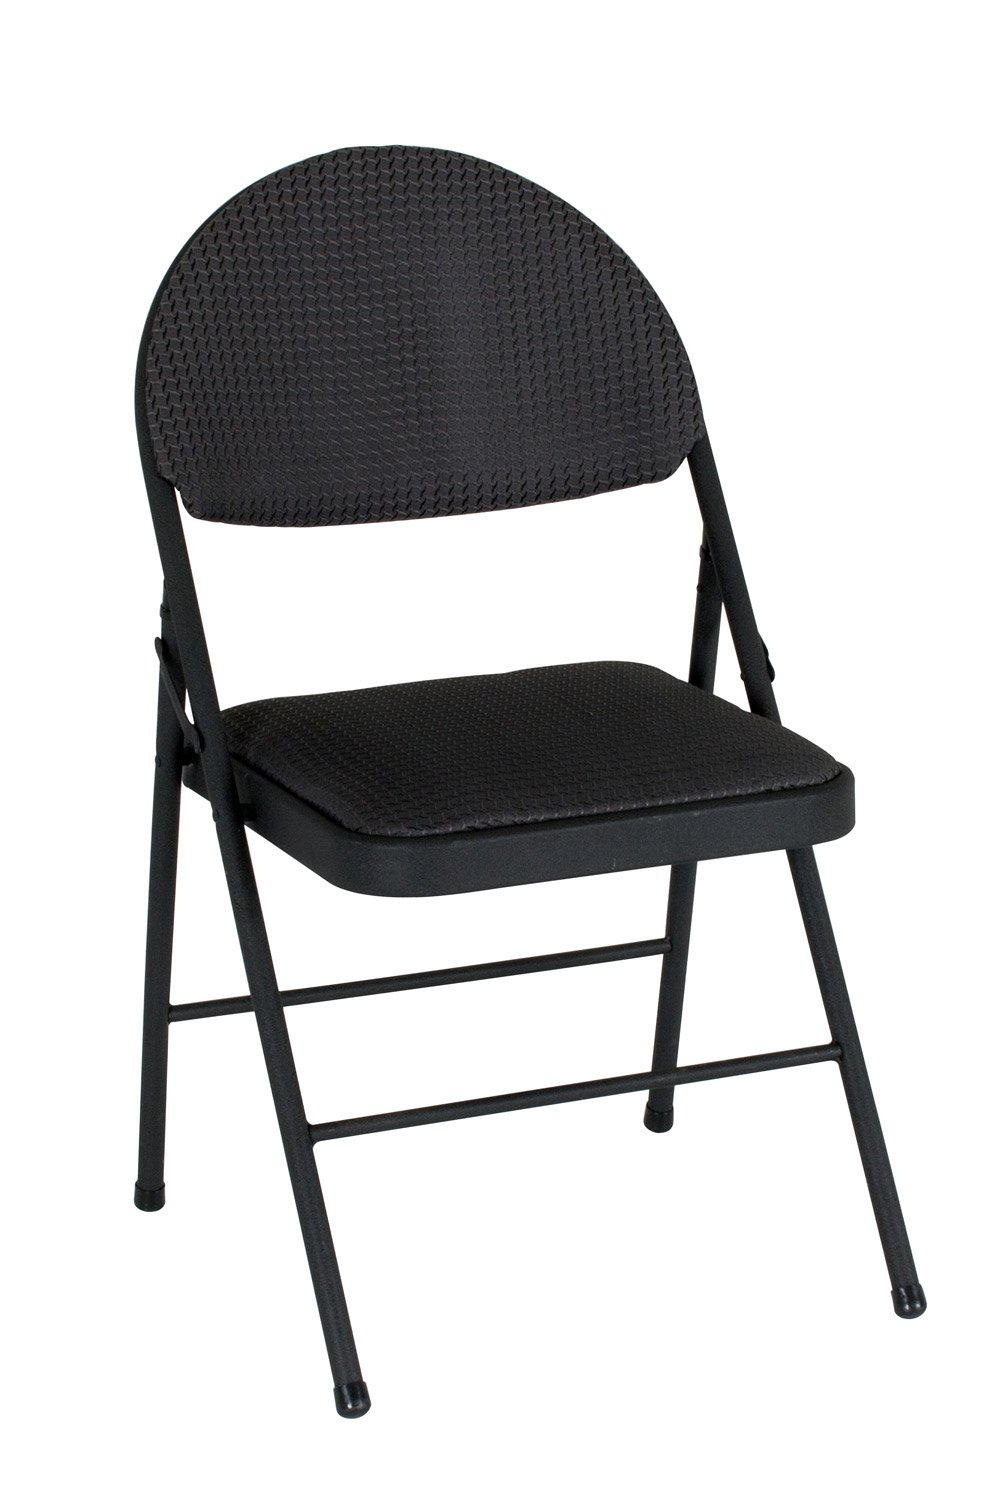 COSCO XL Comfort Folding Chair Black Fabric (4-pack) Dorel Home Furnishings 37975TMS4E